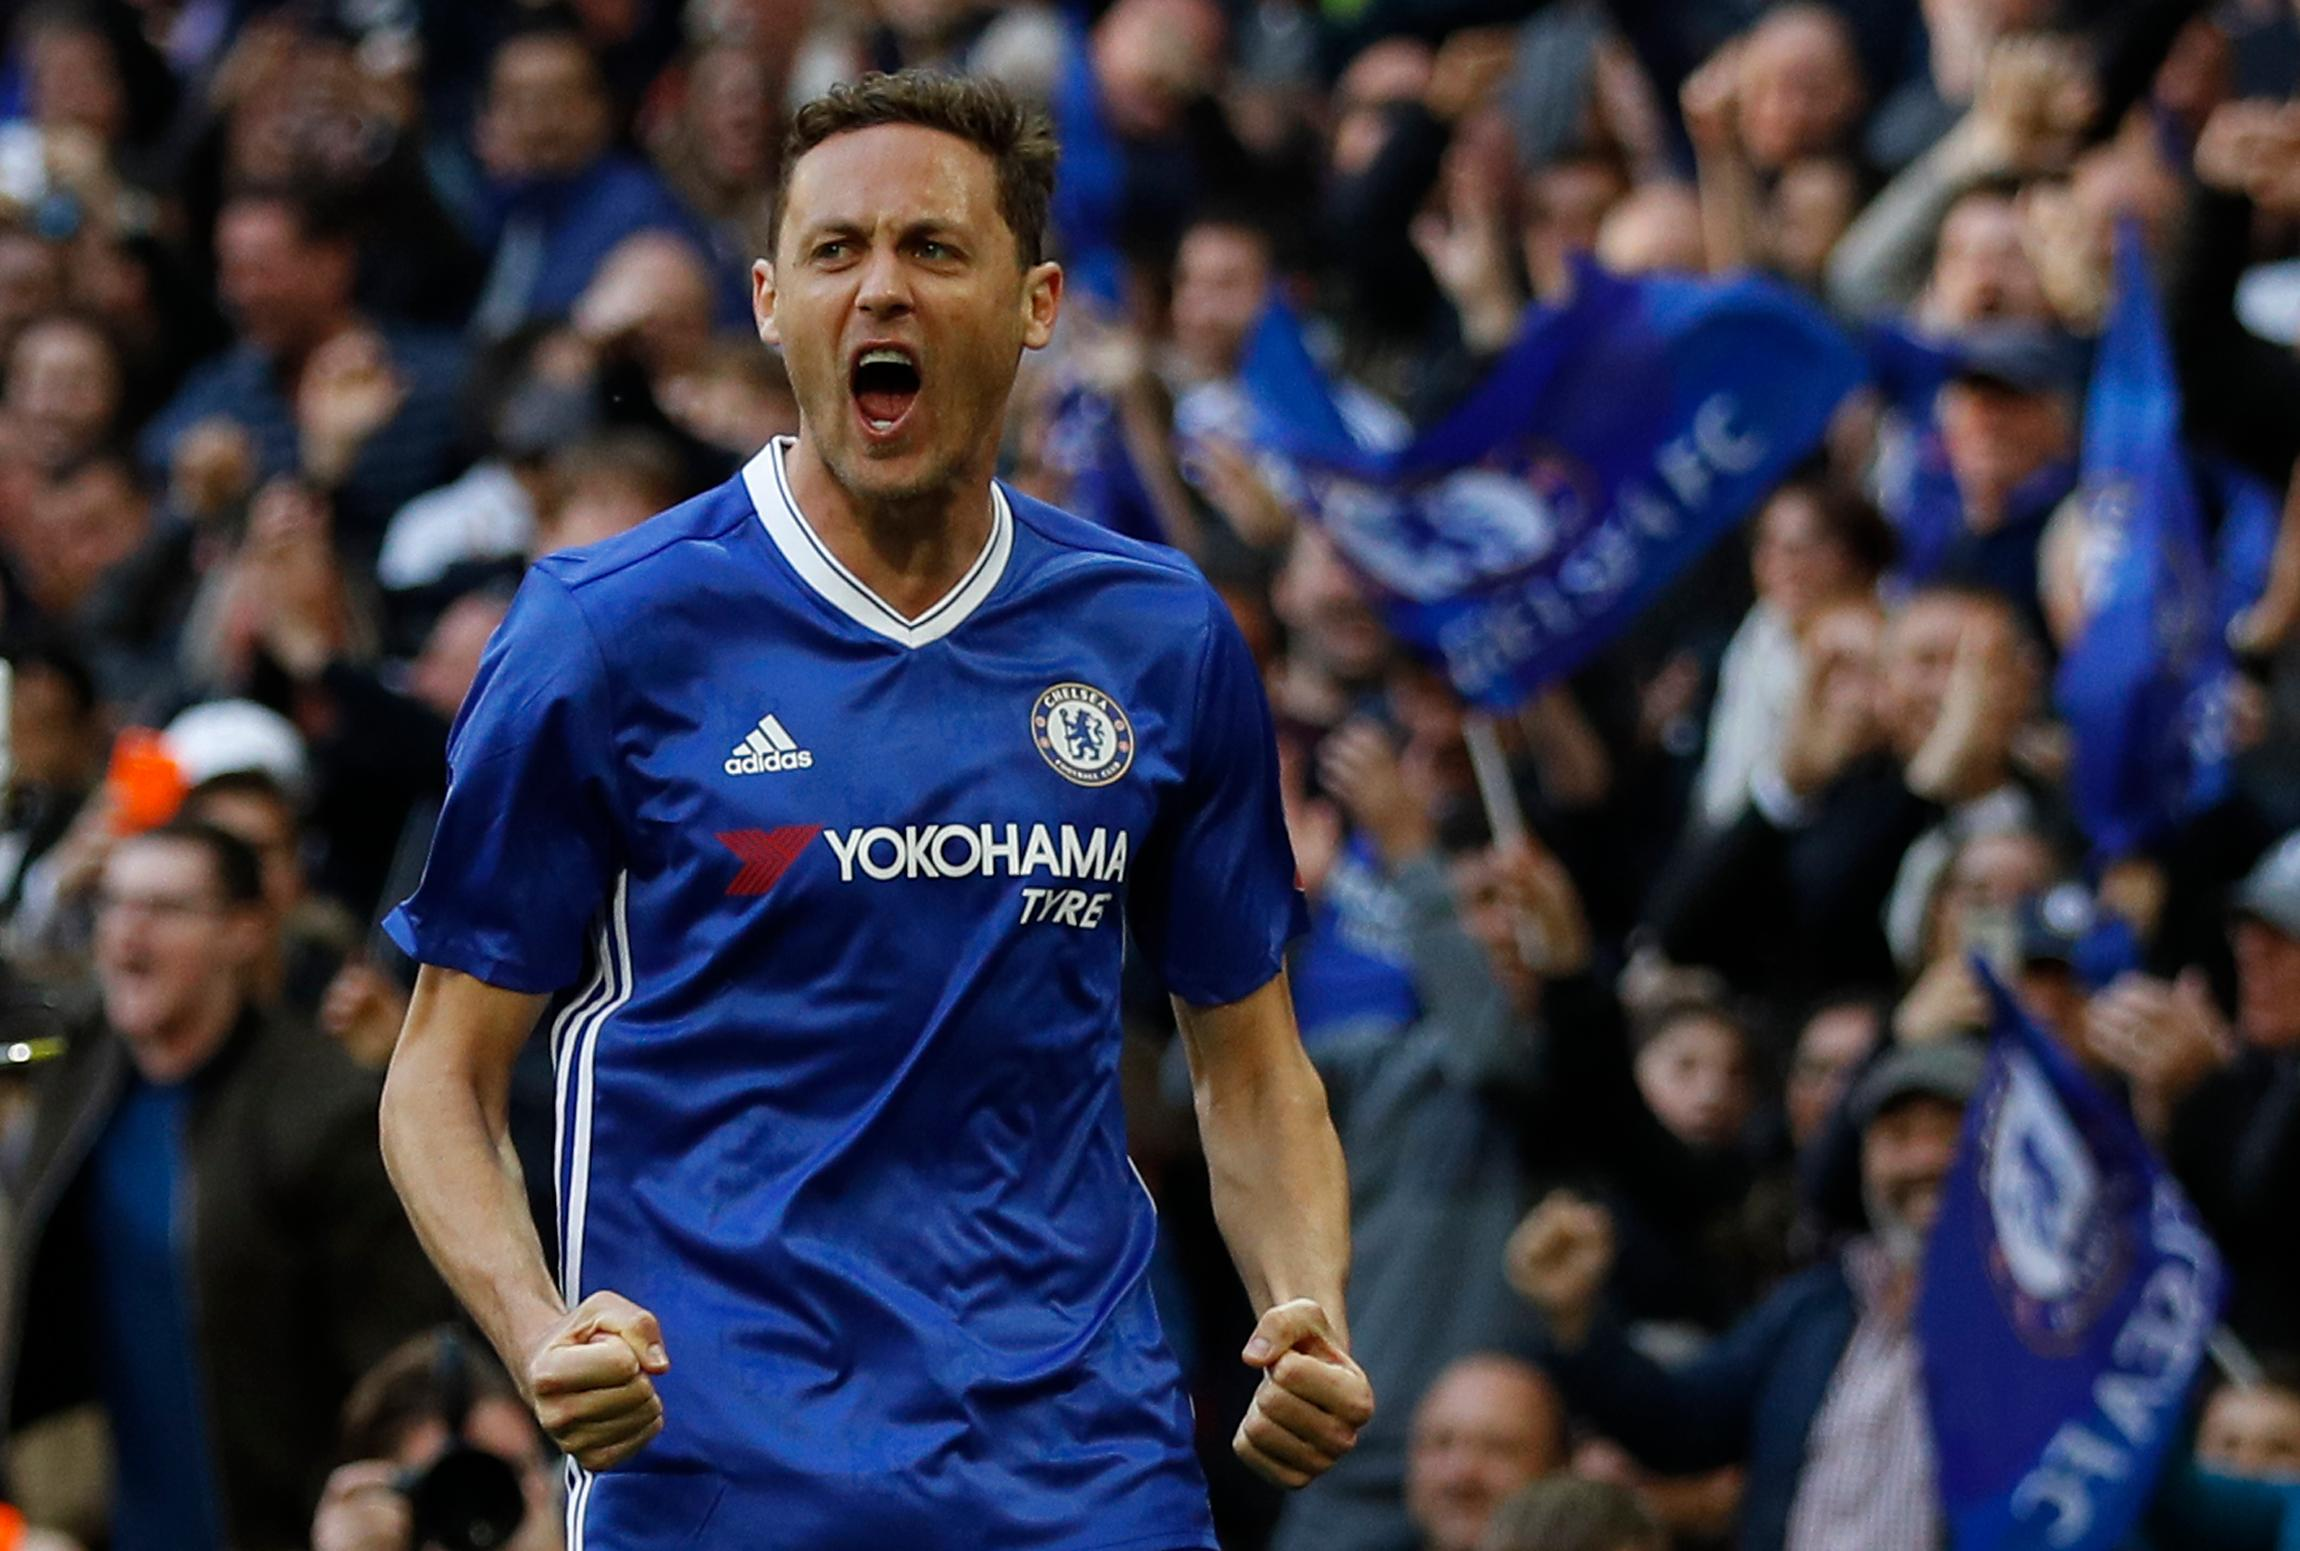 Nemanja Matic Football  Nemanja Matic Football Chelsea